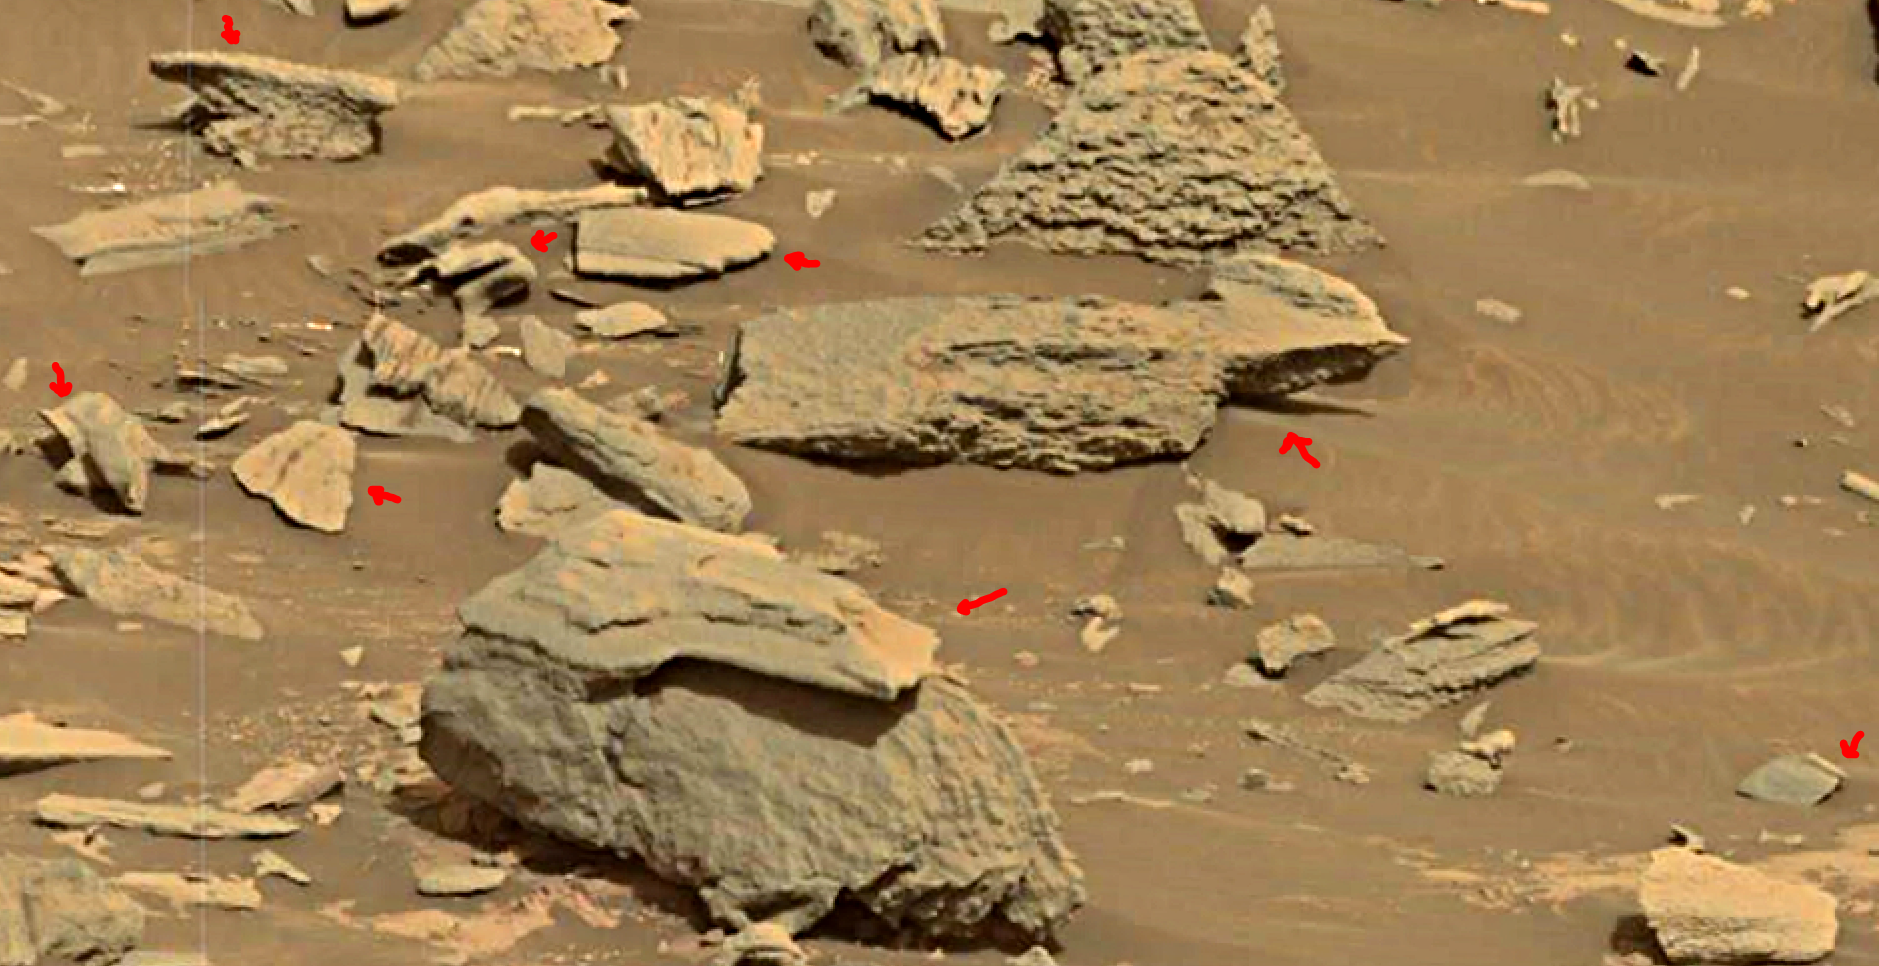 mars-sol-1451-anomaly-artifacts-9-was-life-on-mars